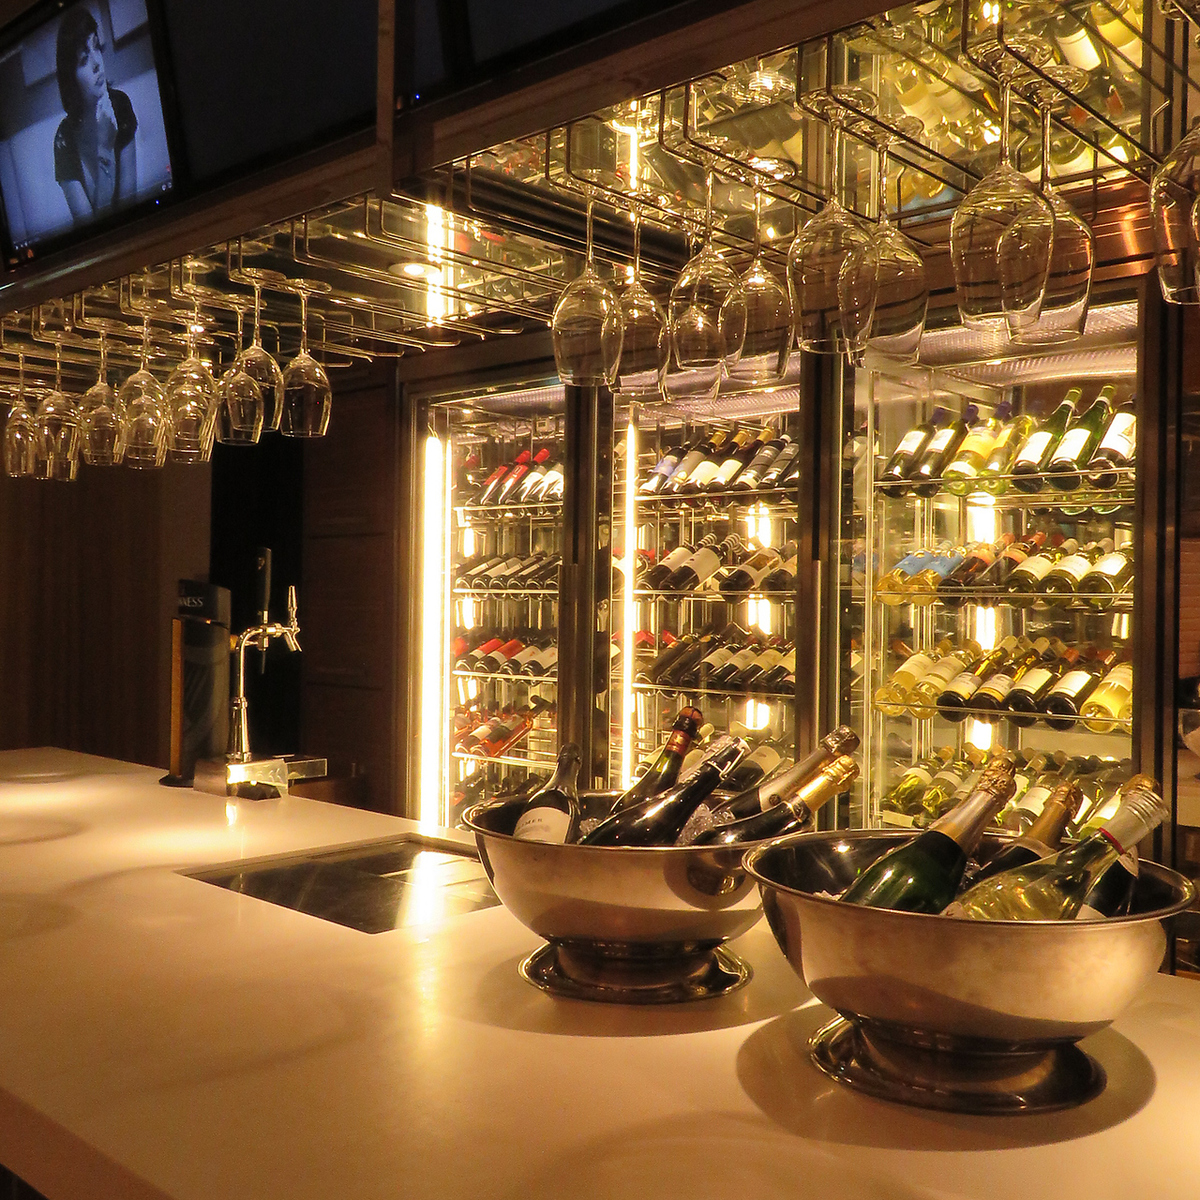 More than 60 kinds of red and white wine! 500 yen glass ~ bottle 2500 yen ~